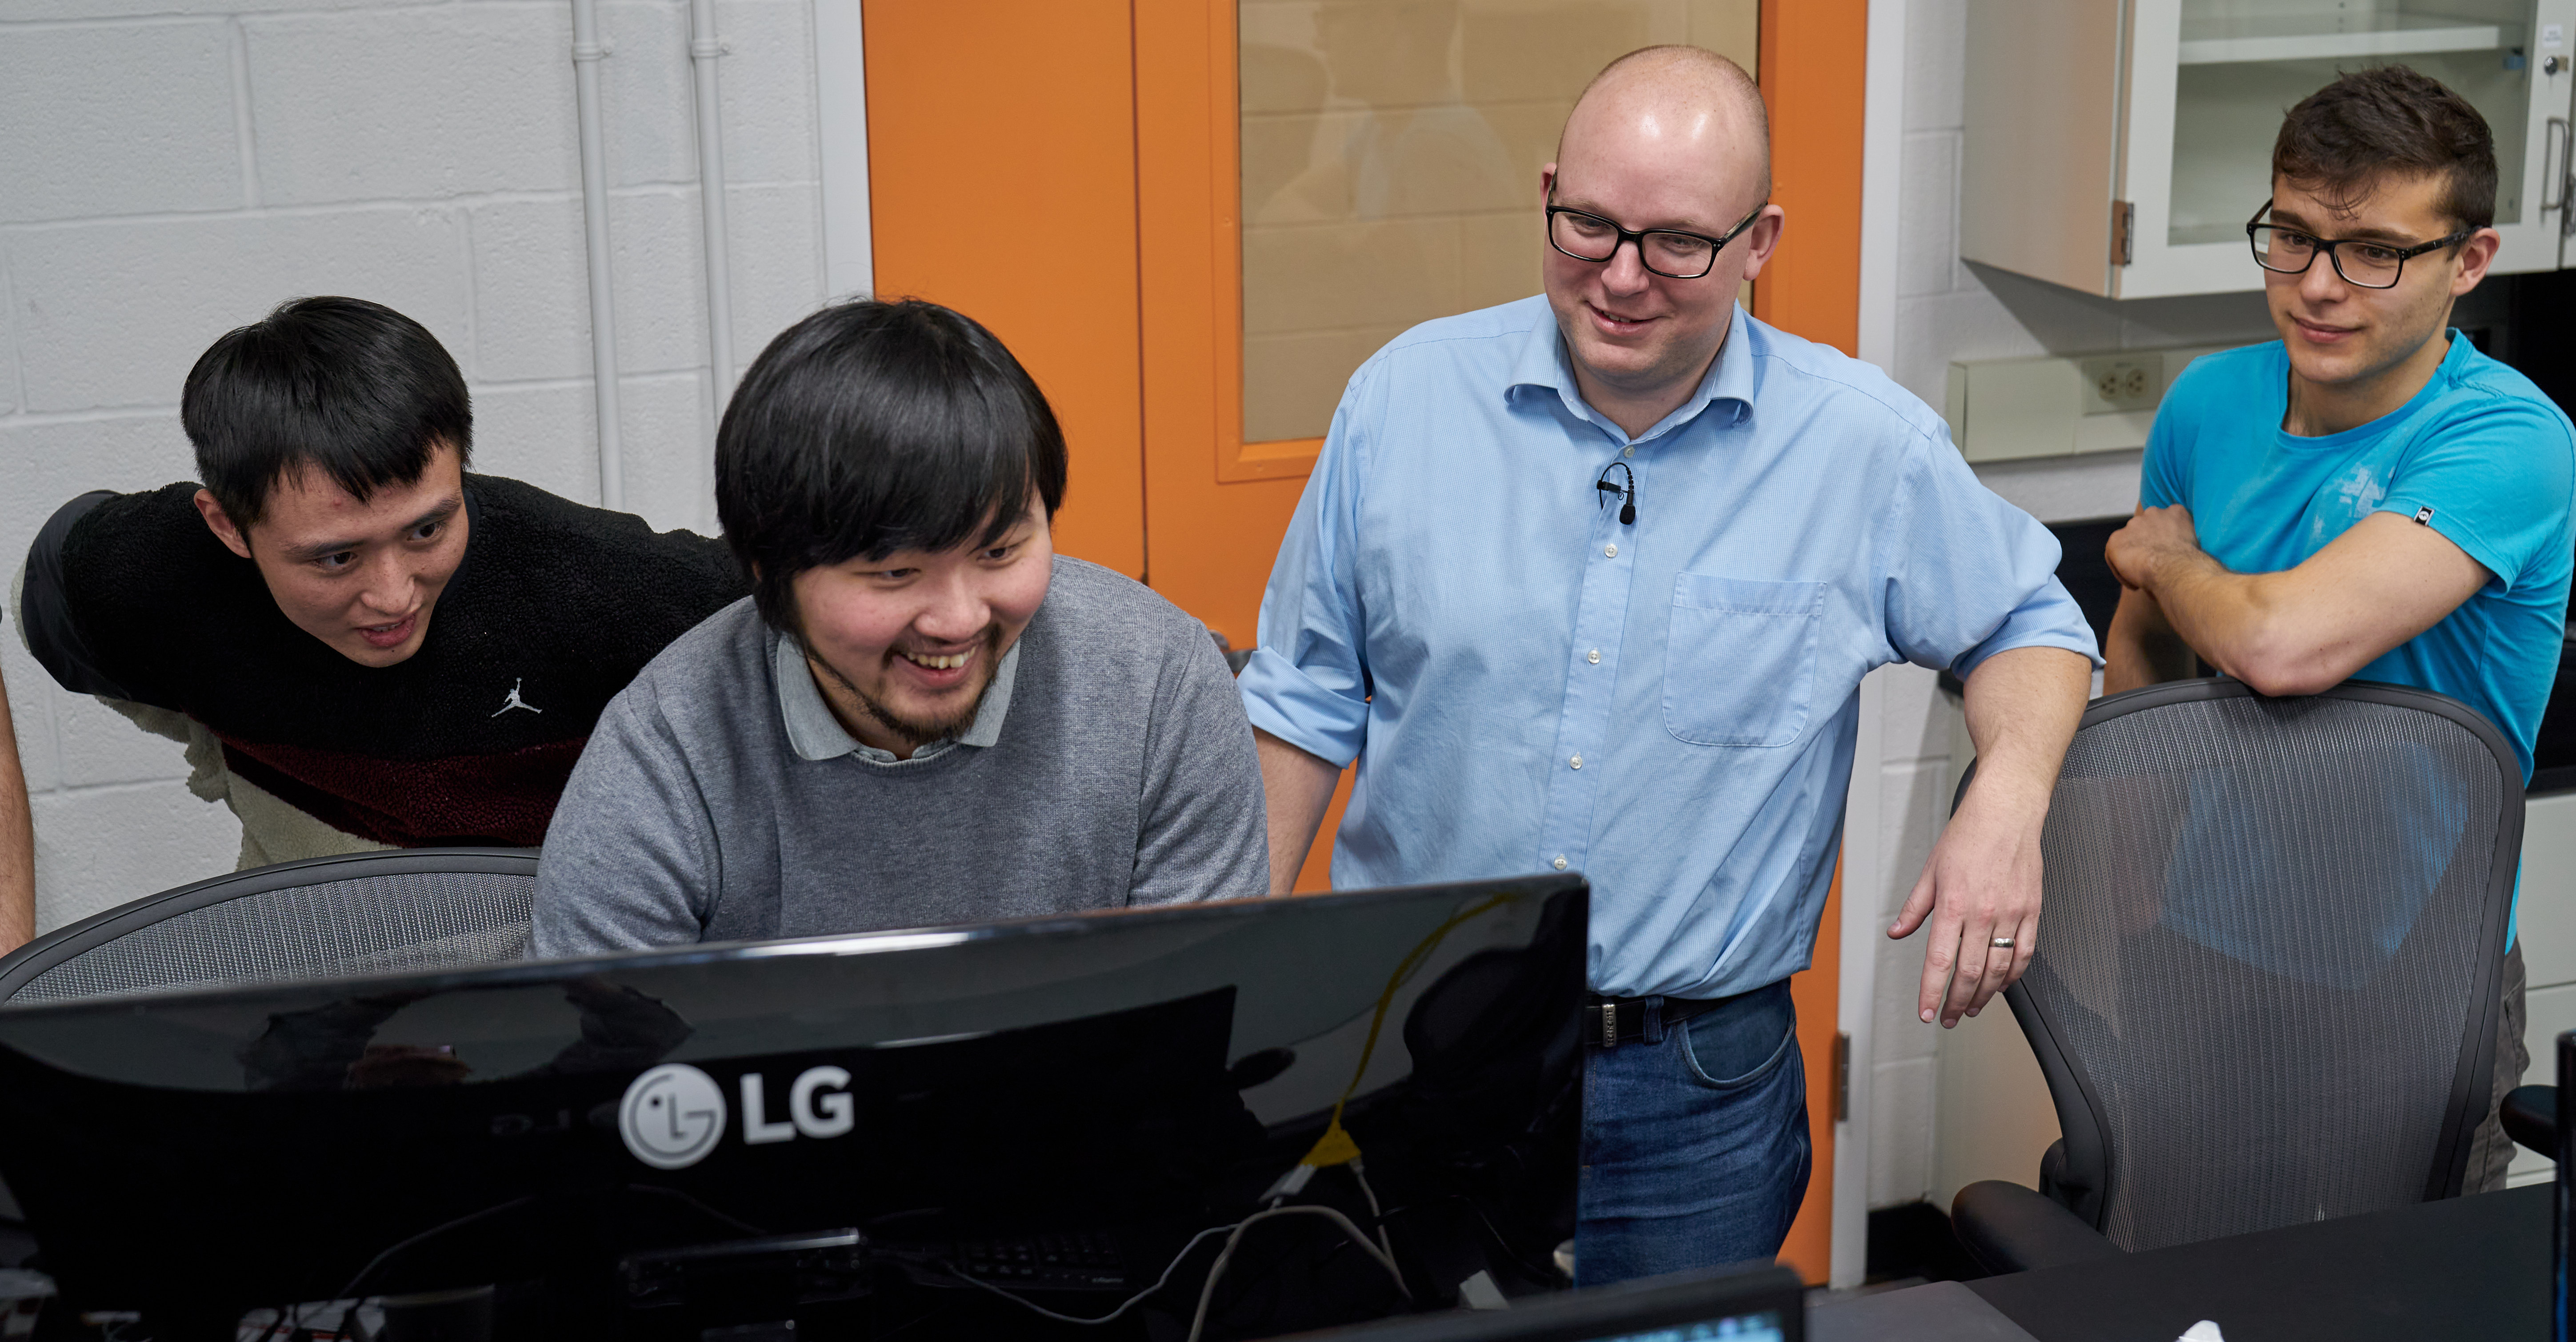 lab members and peter mcmahon gather around a computer laughing